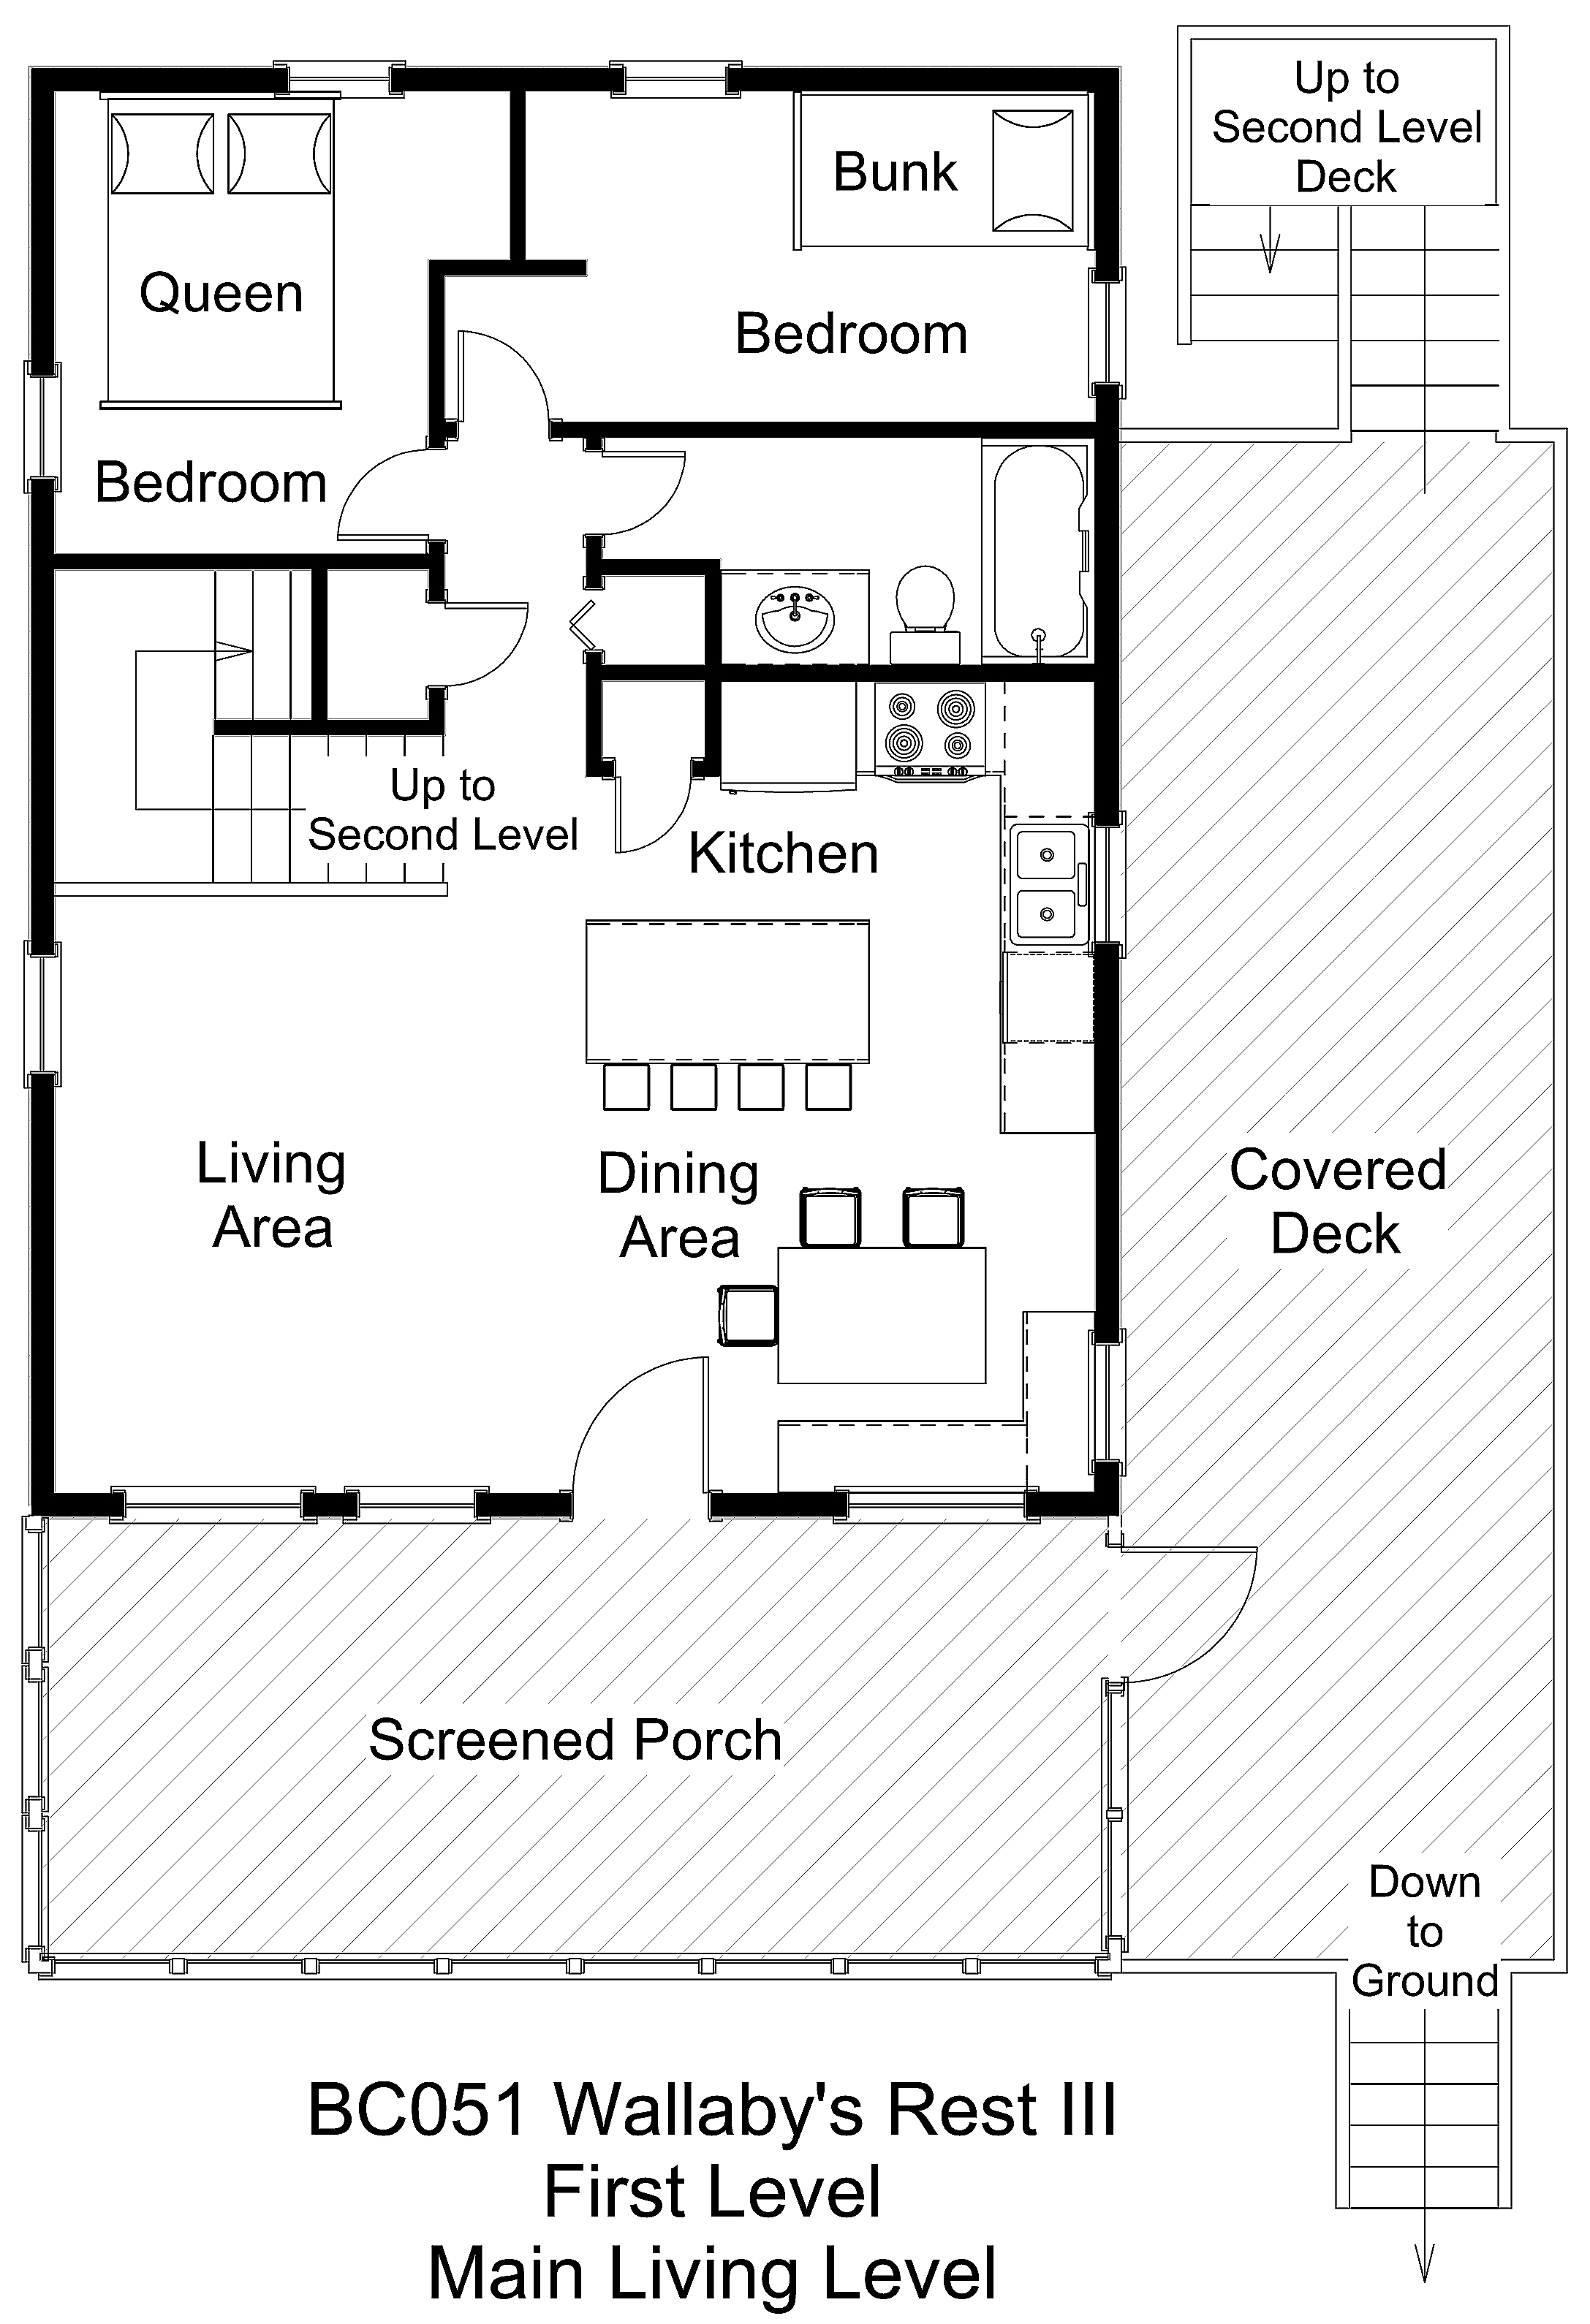 Oceanside vacation rental wallabys rest iii bc051wallabysrestiiifloorplan level1g ccuart Choice Image